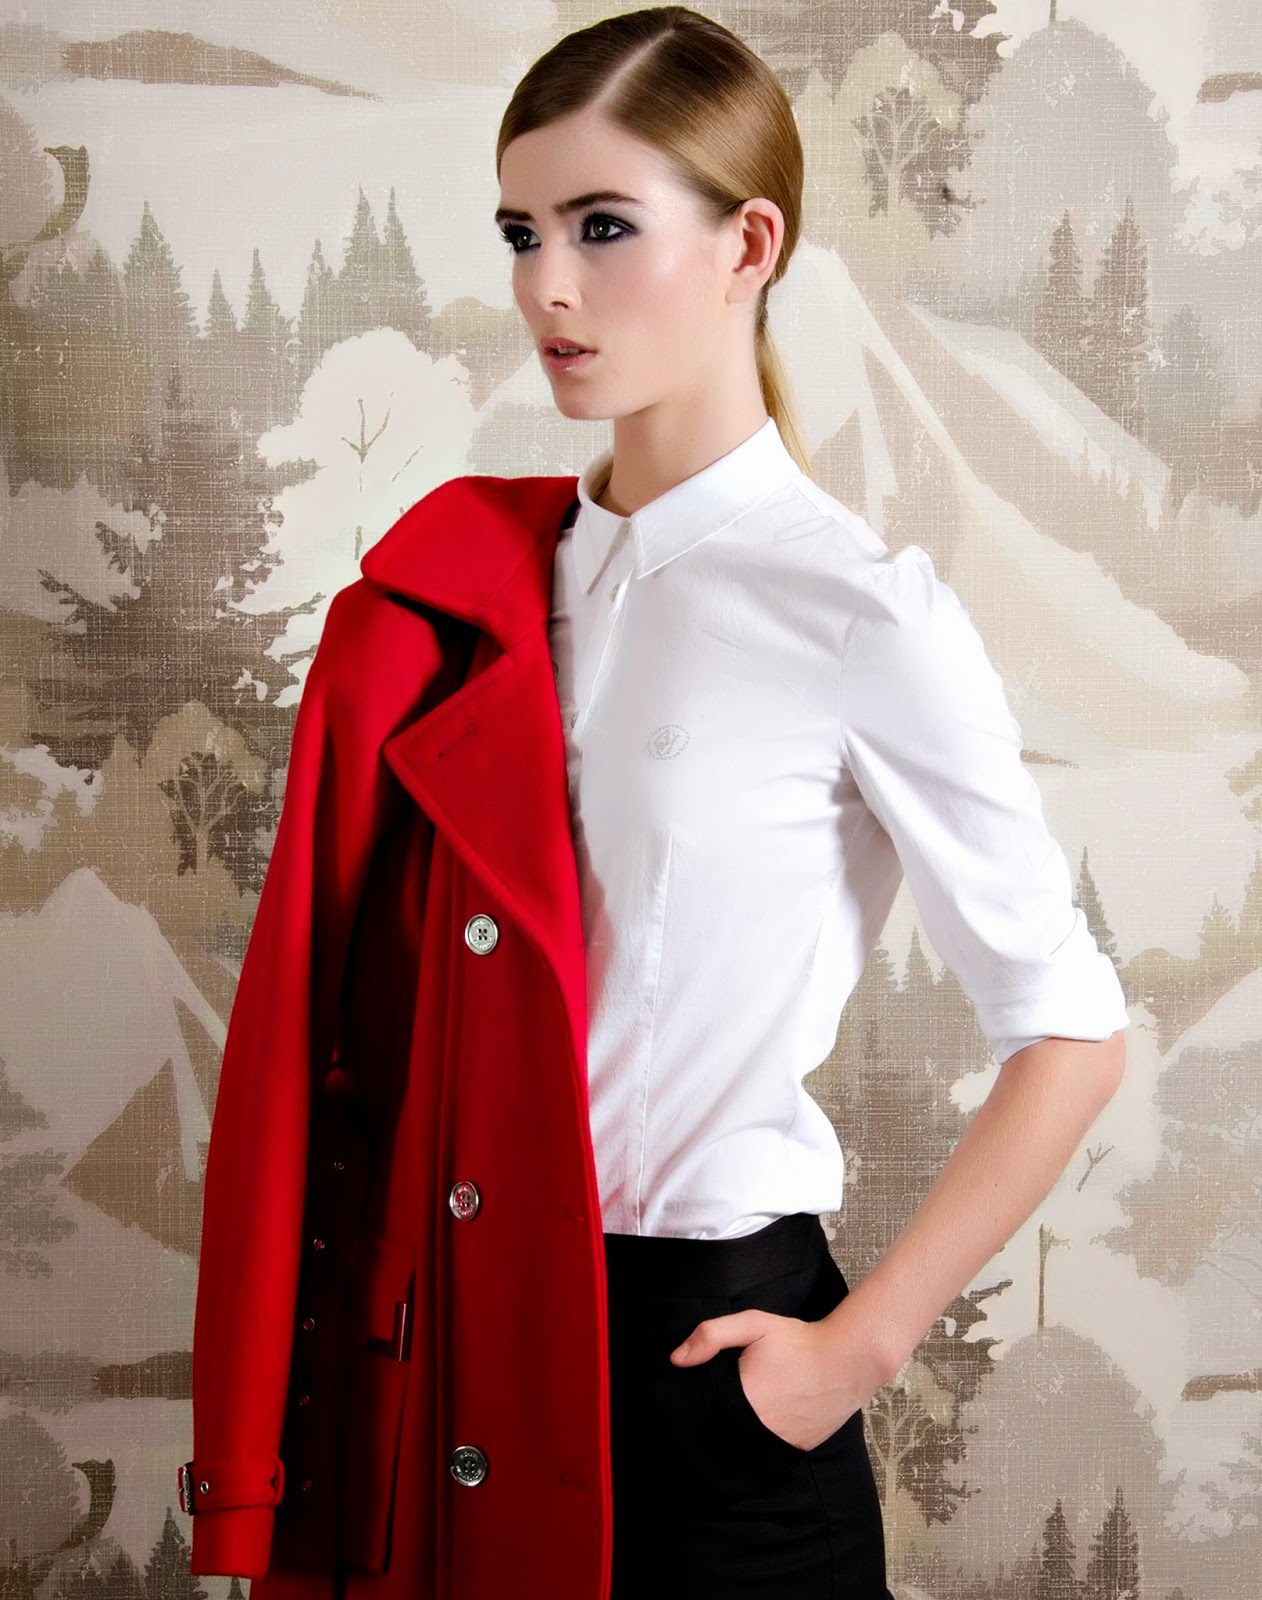 masculine tailoring with androgynous hairstyling for a fall editorial magazine shoot